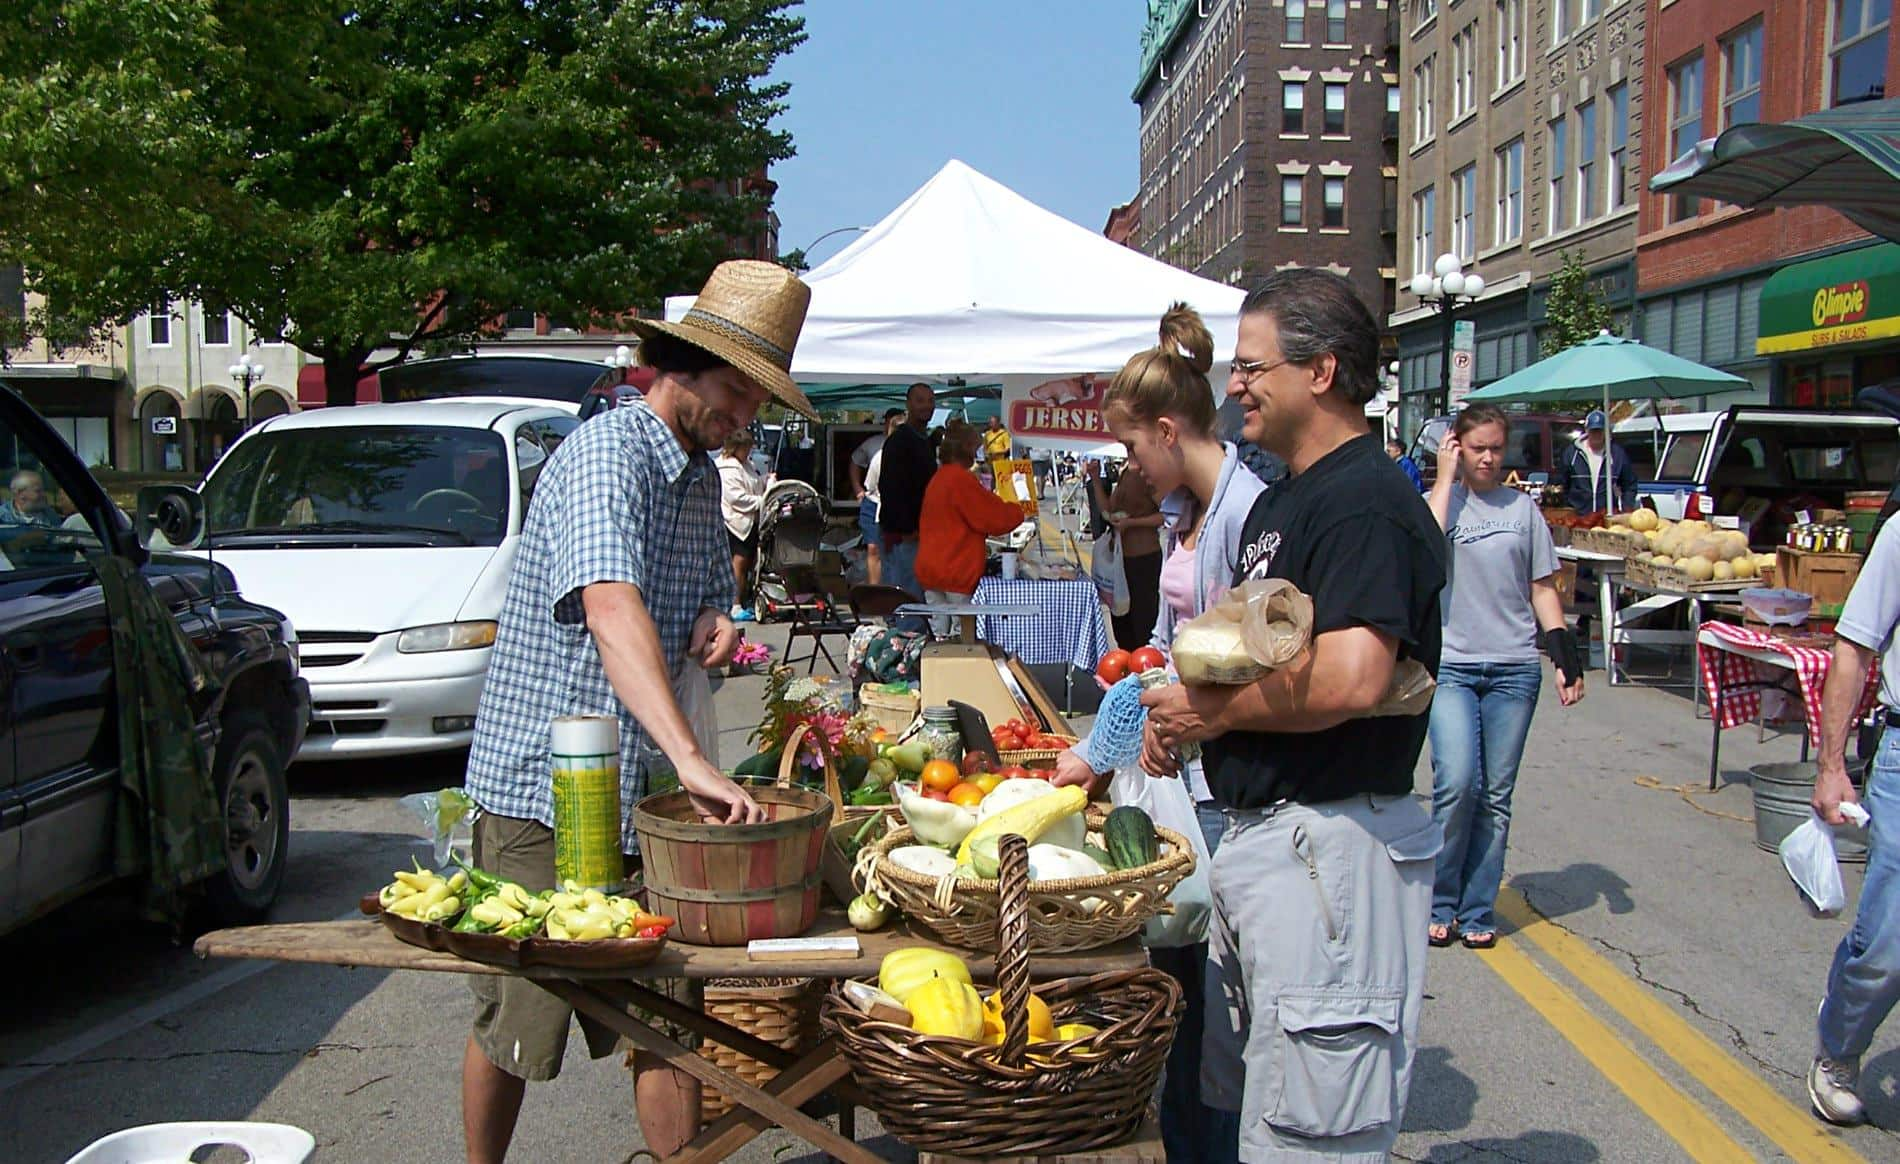 Outdoor farmers market in the street with vendors selling fresh produce to customers amidst buildings, cars, trees and blue skies